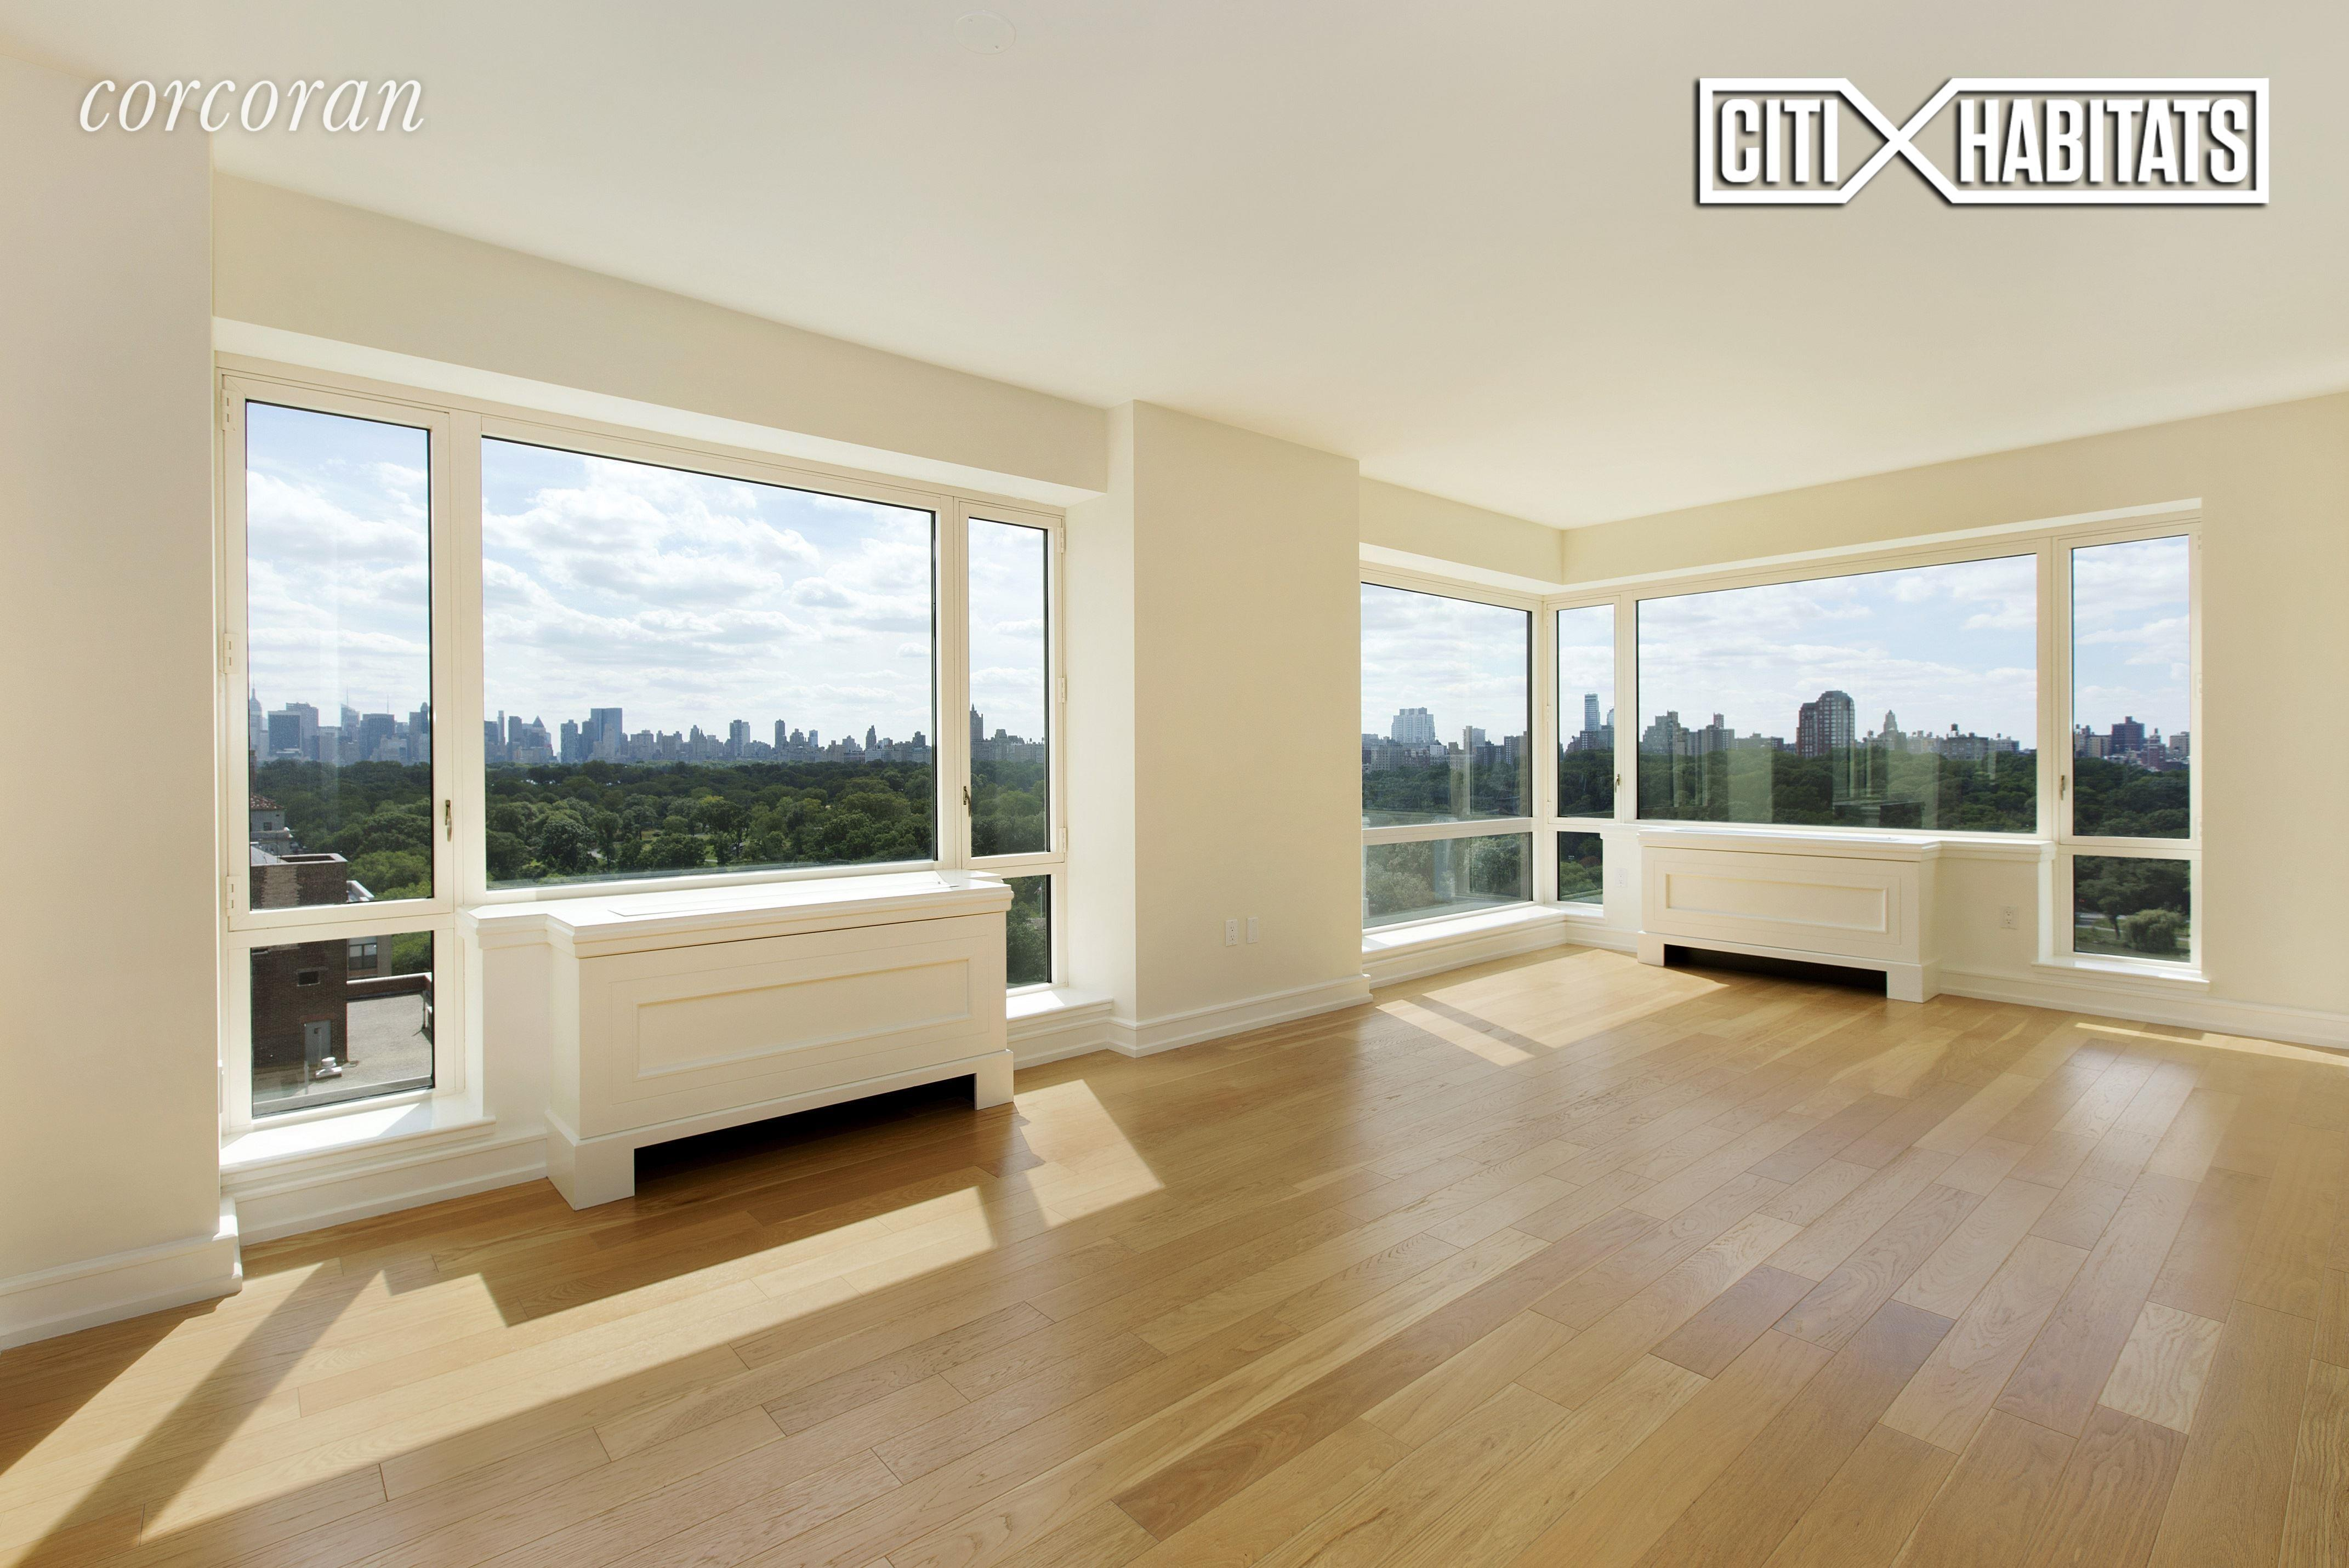 """3BR 3 full bath on Fifth Ave, with direct Central Park and Southern Skyline view! One Museum Mile, designed by acclaimed architect Robert A. M. Stern. An elegant entry foyer leads to the expansive living room with oversized windows that show off breathtaking sunsets over Central Park, as well as the magnificent Manhattan skyline. The open kitchen features an island and top-of-the-line appliances, and all bedrooms faces south and west, offering picture-perfect park views. There are two master bathrooms with showers and deep soaking bathtubs, two large walk-in closets, eight full-sized closets, and a washer and dryer in the apartment. One Museum Mile offers some of the best amenities in Manhattan—a rooftop swimming pool, a 20-seat dining room facing Central Park, two separate rooms for entertaining, a state-of-the-art fitness center, game room, playroom, and two roof terraces with outdoor grills. This is a true """"house in the sky"""" in one of the city's most sought-after locations. Make this grand residence on Central Park your new home! (Tenants in place, require 24-48 hour notice)"""